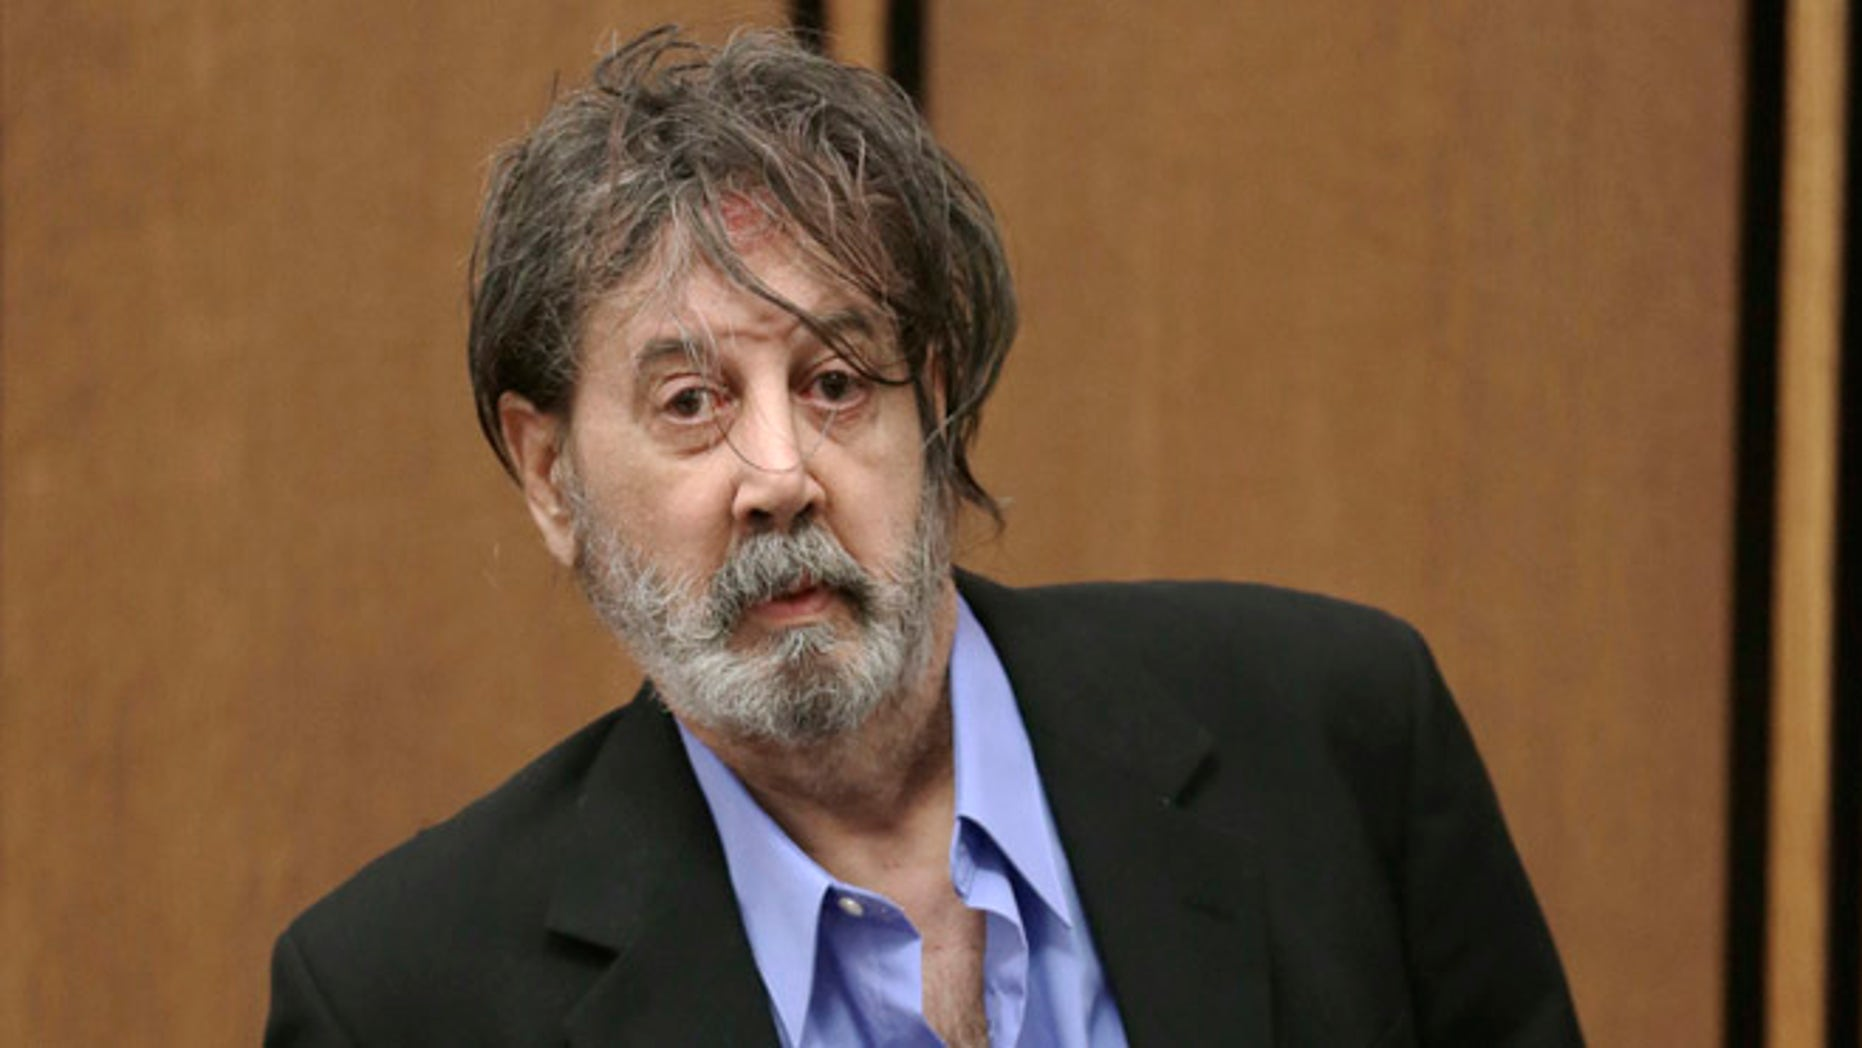 Nov. 13, 2013: Bobby Thompson, who authorities have identified as Harvard-trained attorney John Donald Cody, enters the courtroom in Cleveland.